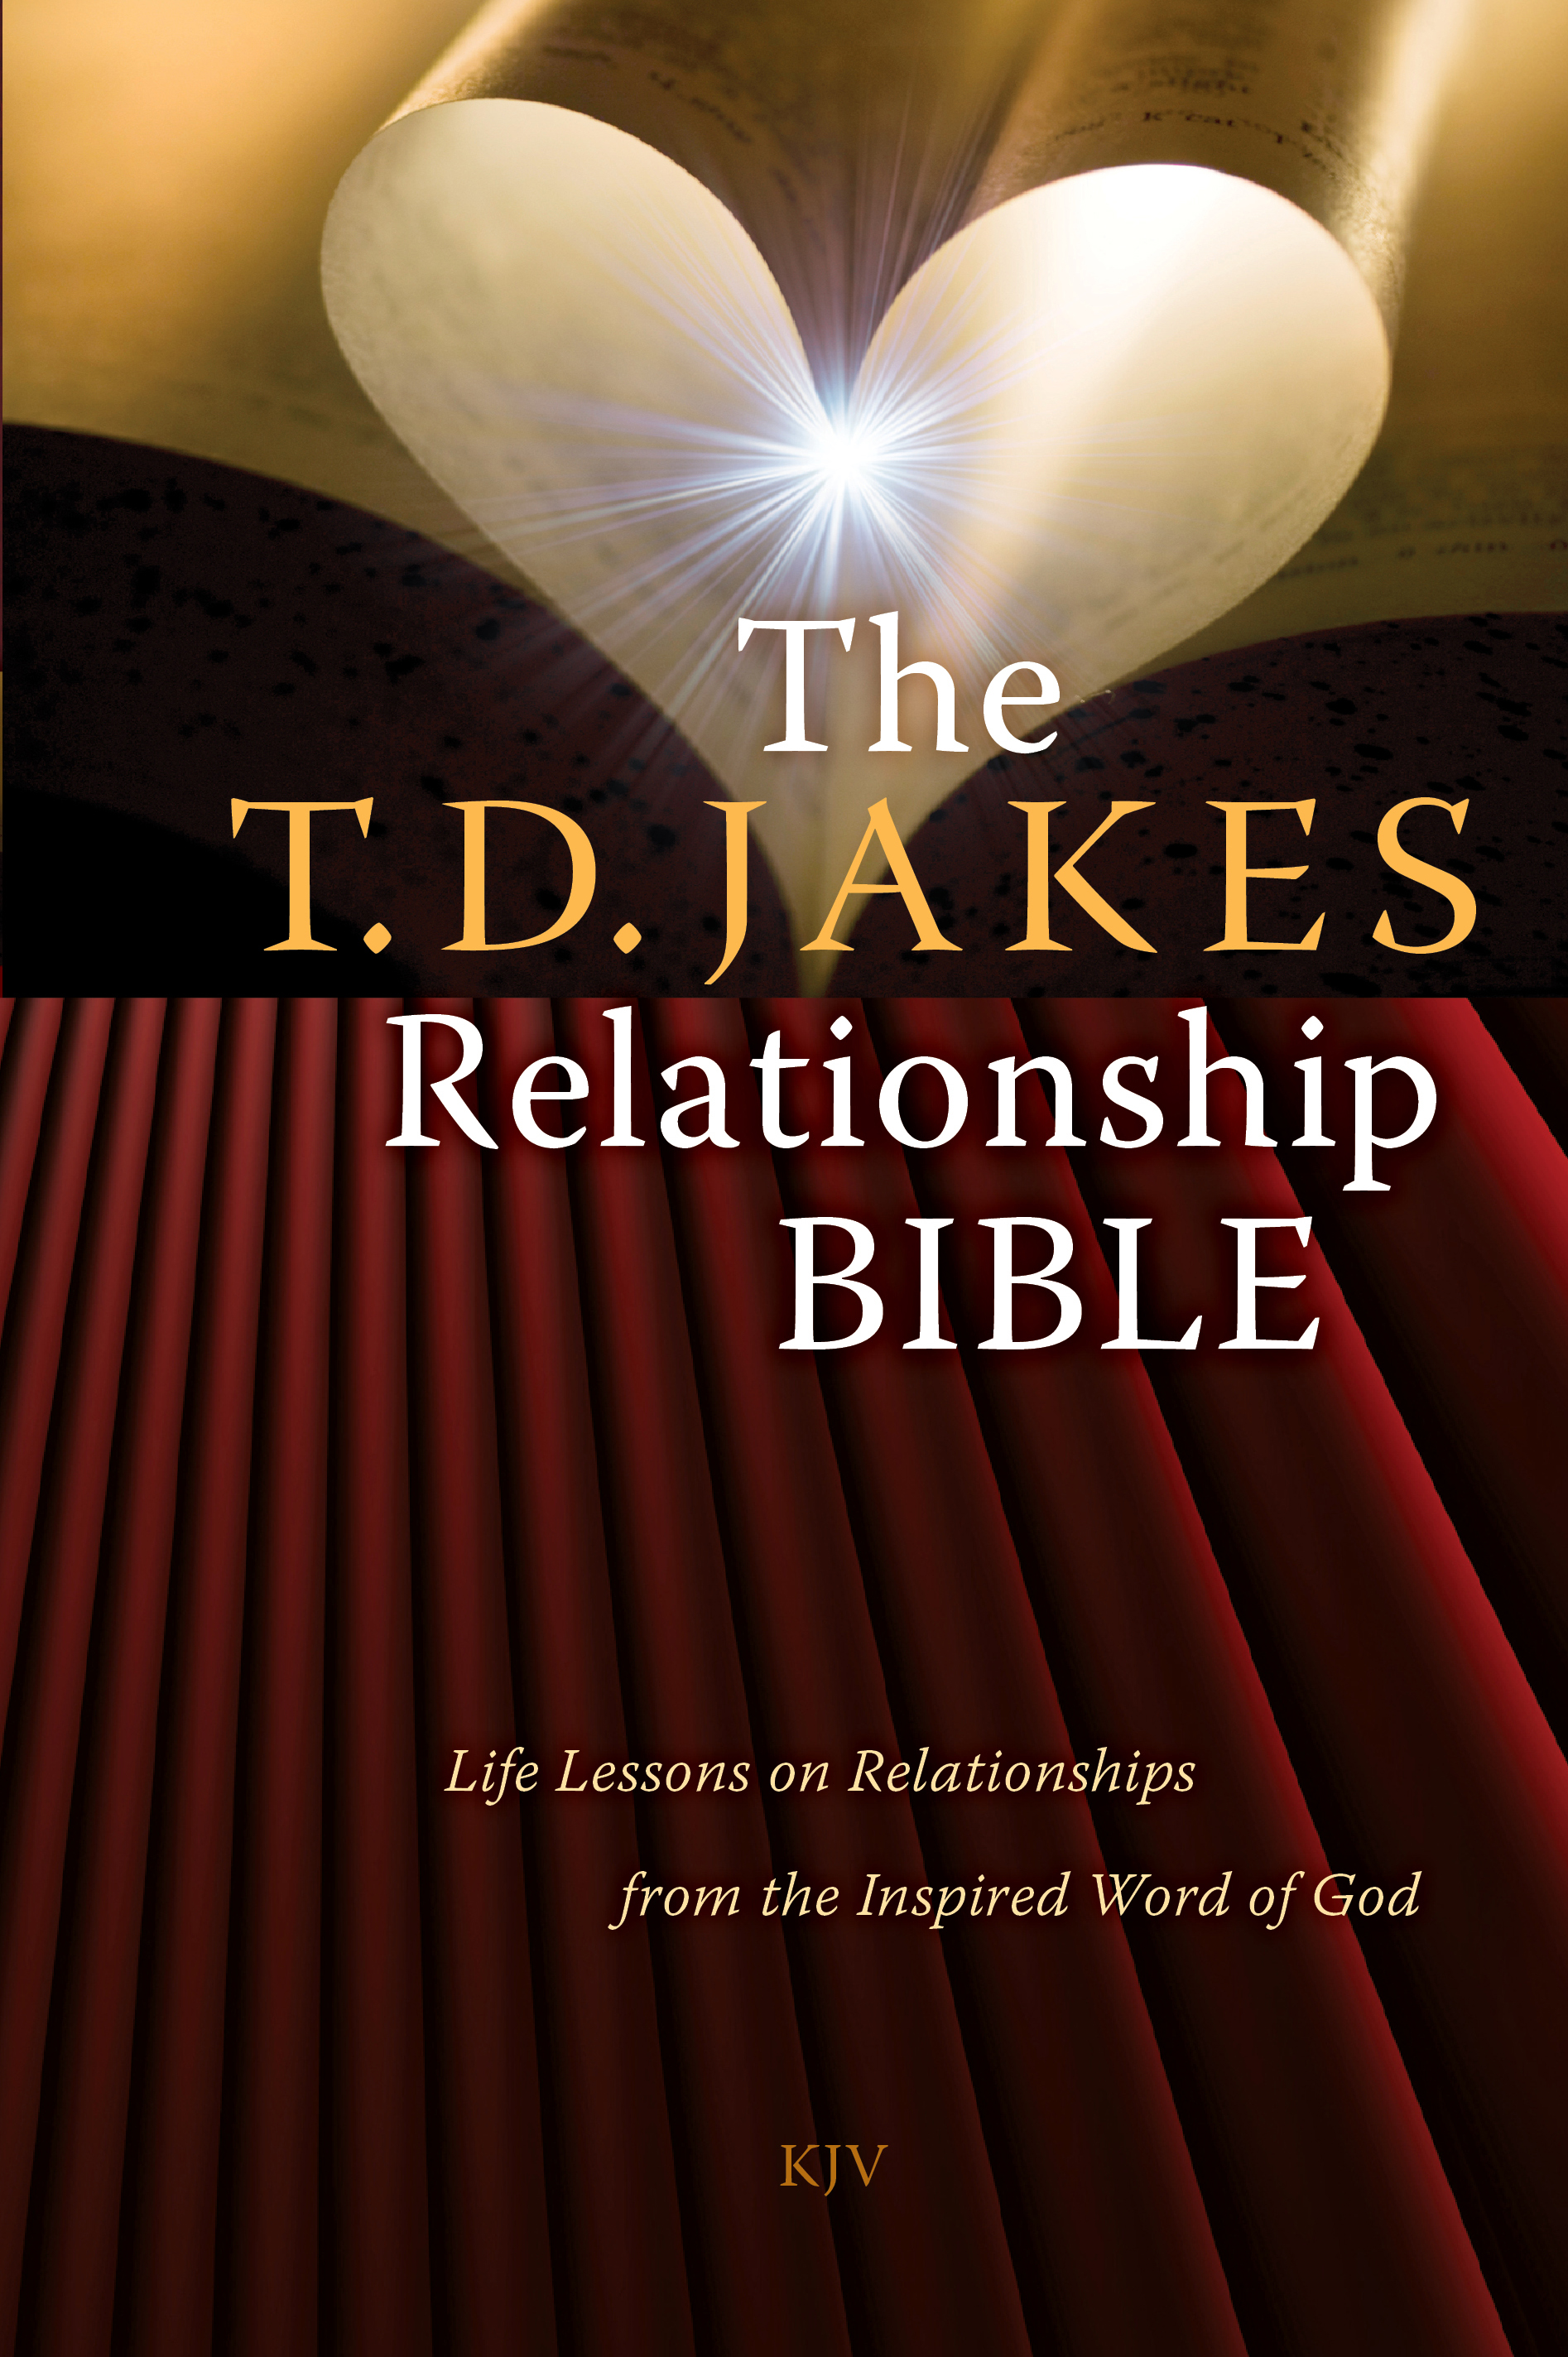 td jakes advice on dating Time alone (relationship advice) by td jakes join newsletter:   subscribe to grace digital here   translations:.